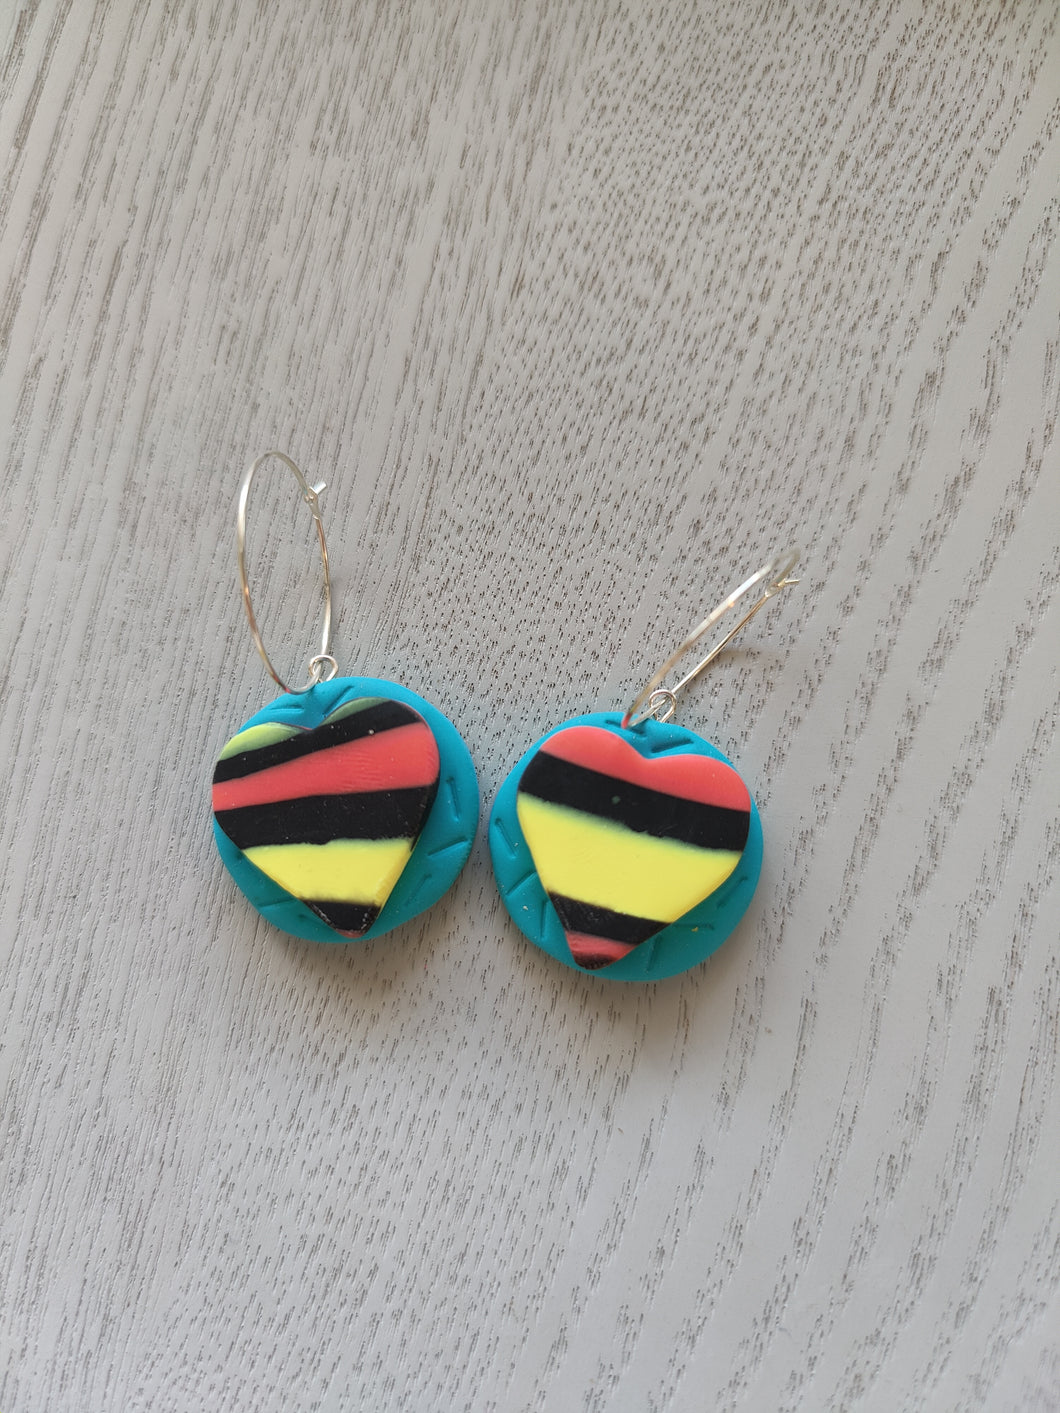 Retro Heart Hoop Earrings - Shazz Art